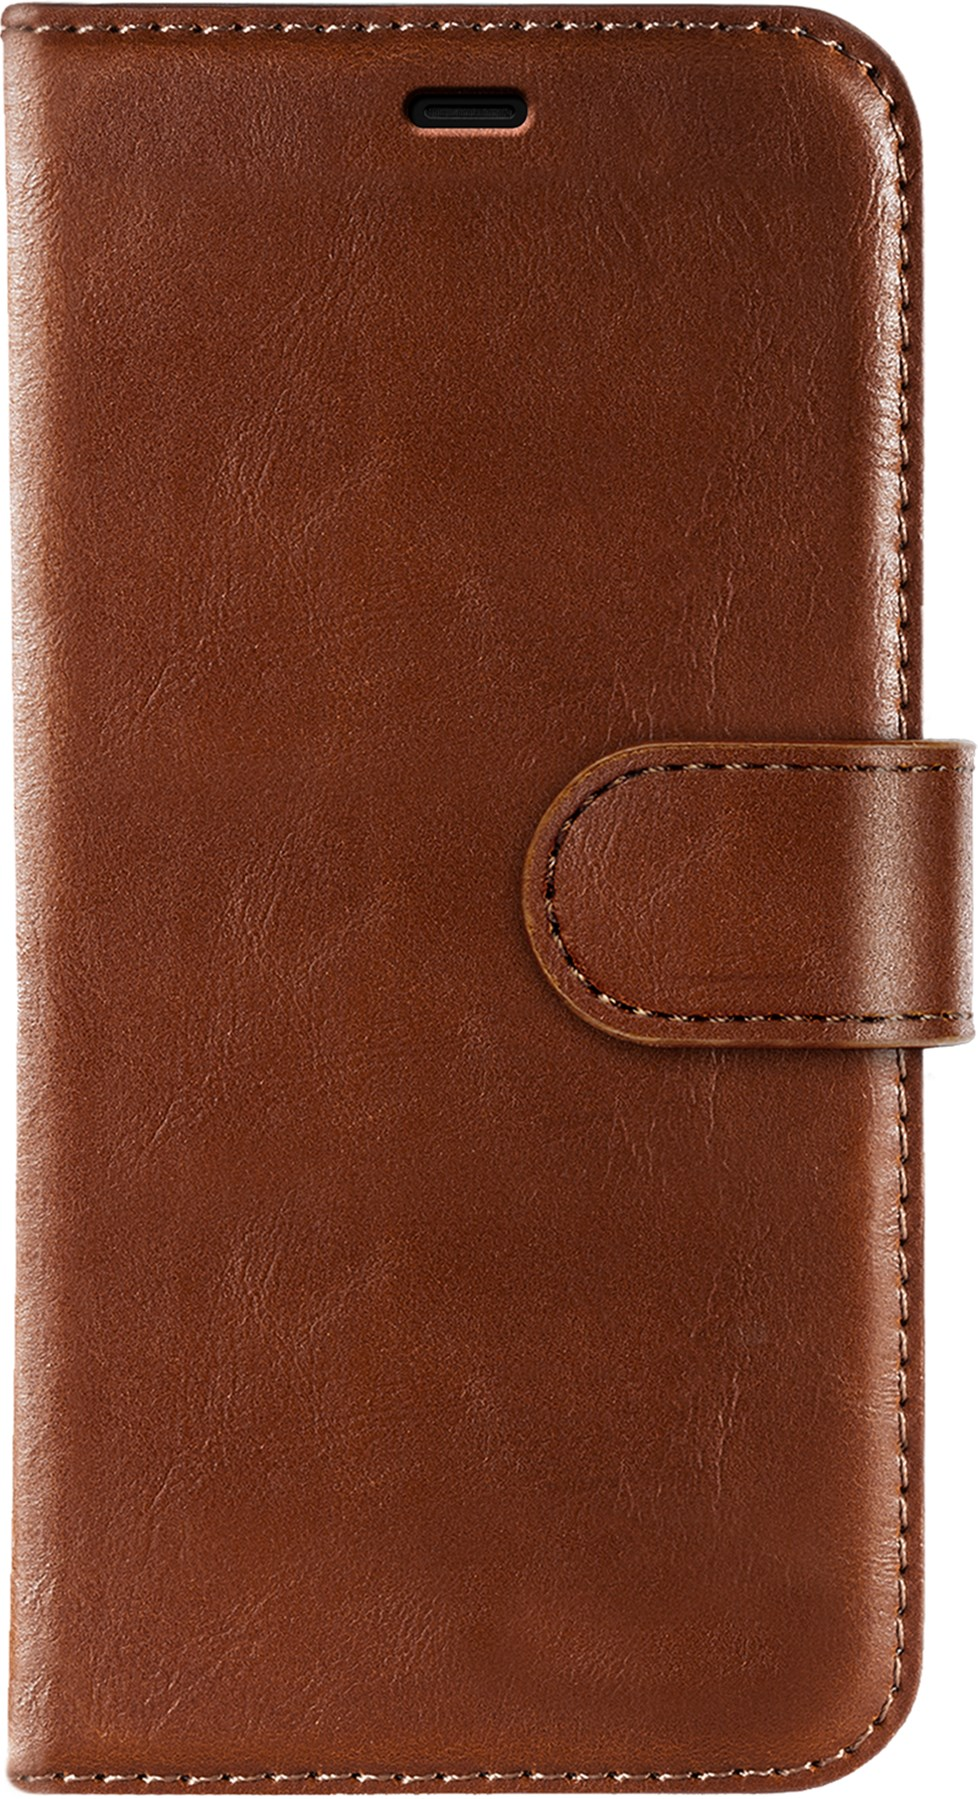 iDeal of Sweden Ideal Magnet Wallet + Iphone 11 Pro Brown